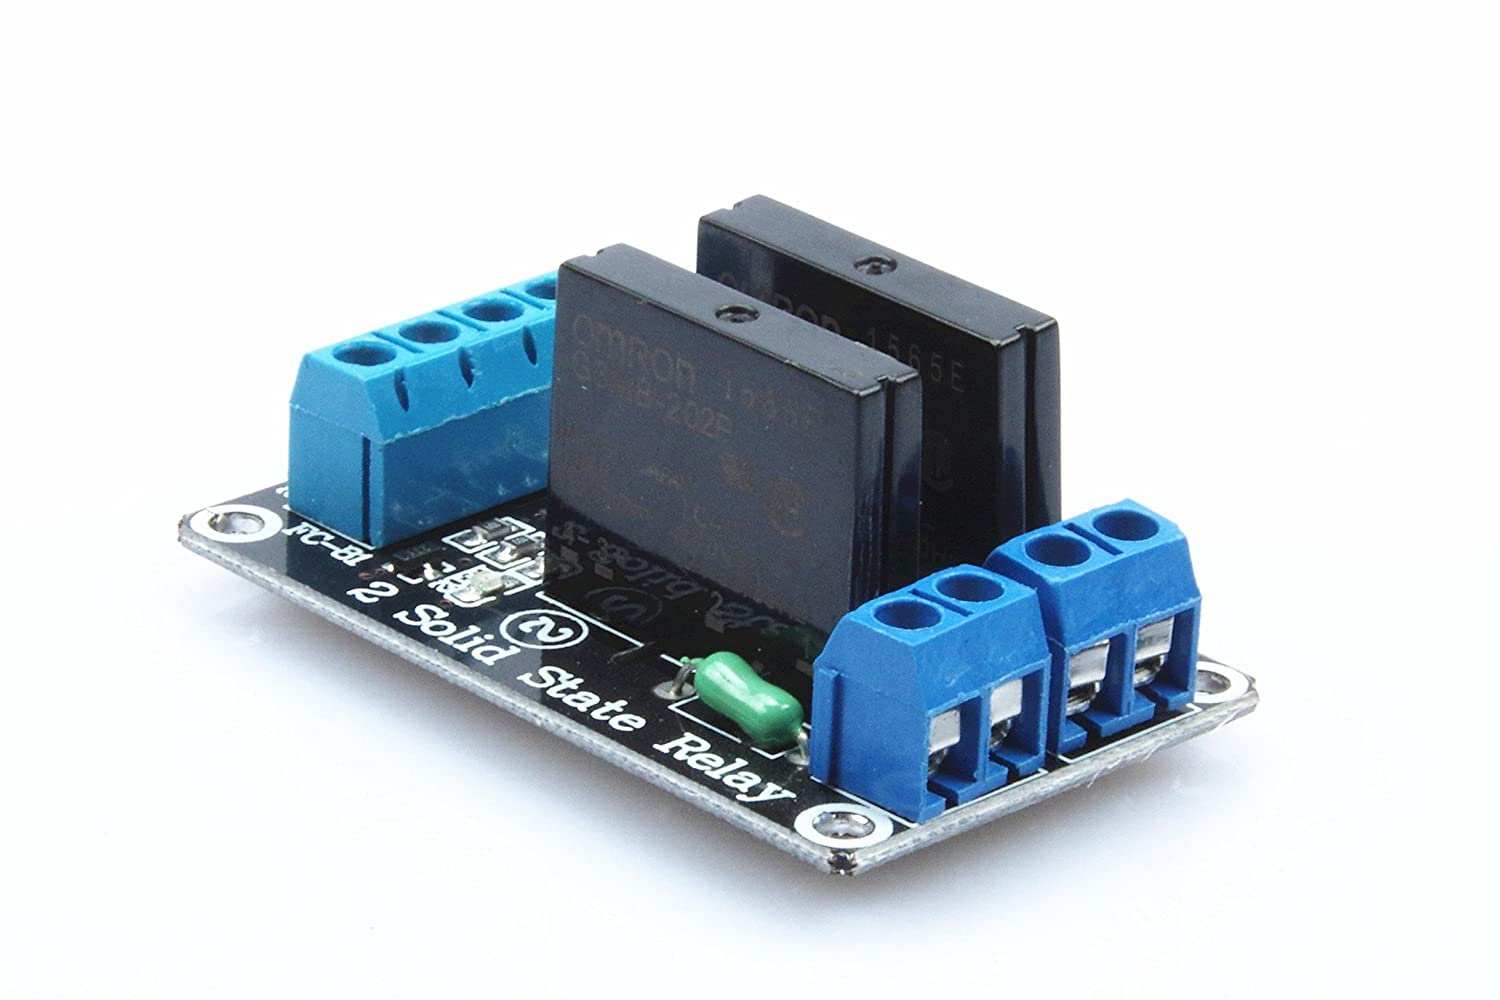 Knacro 12v 2 Way Low Level Solid State Relay Modules Transistors Equivalent Circuit Of A Electrical Relays With Fuse 240v 2a Trigger Home Audio Theater